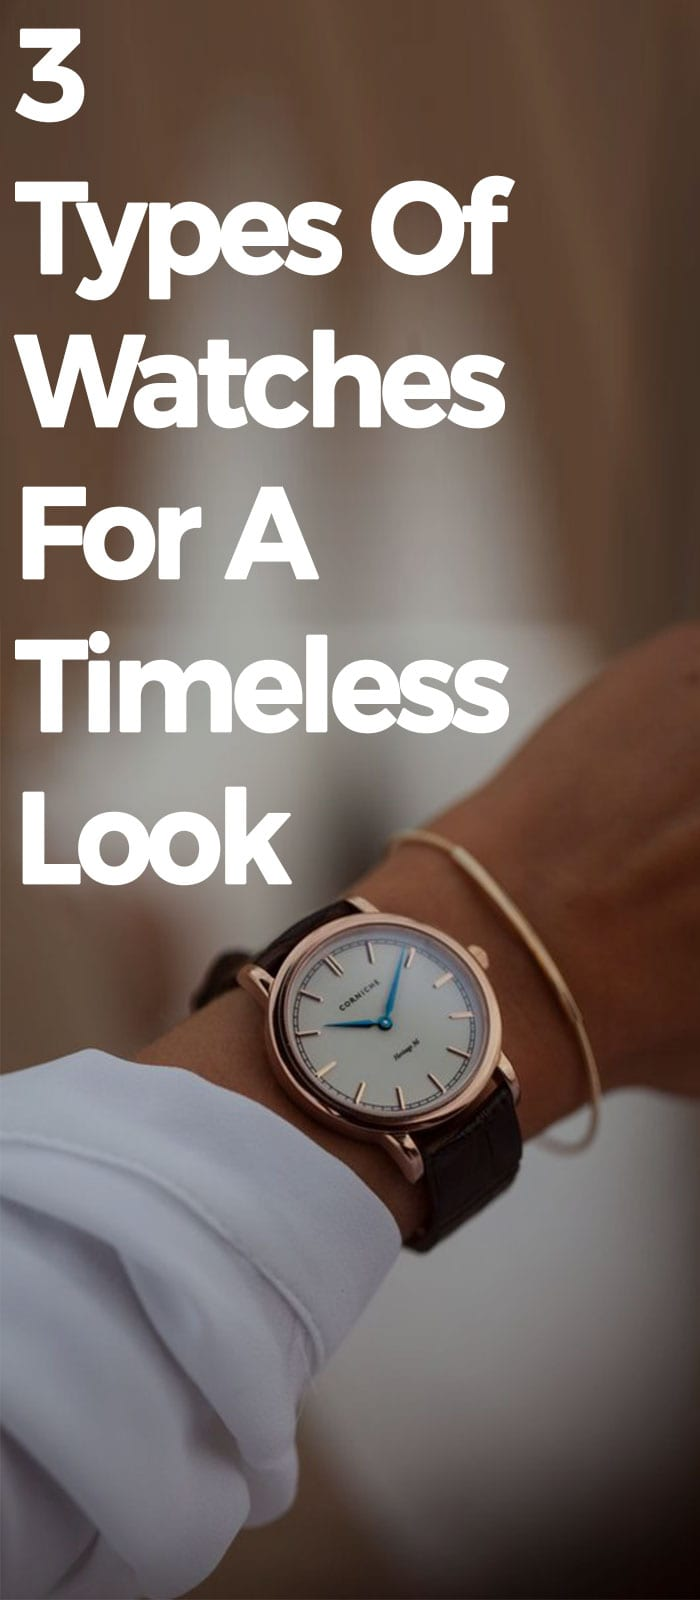 3 Types Of Watches For A Timeless Look